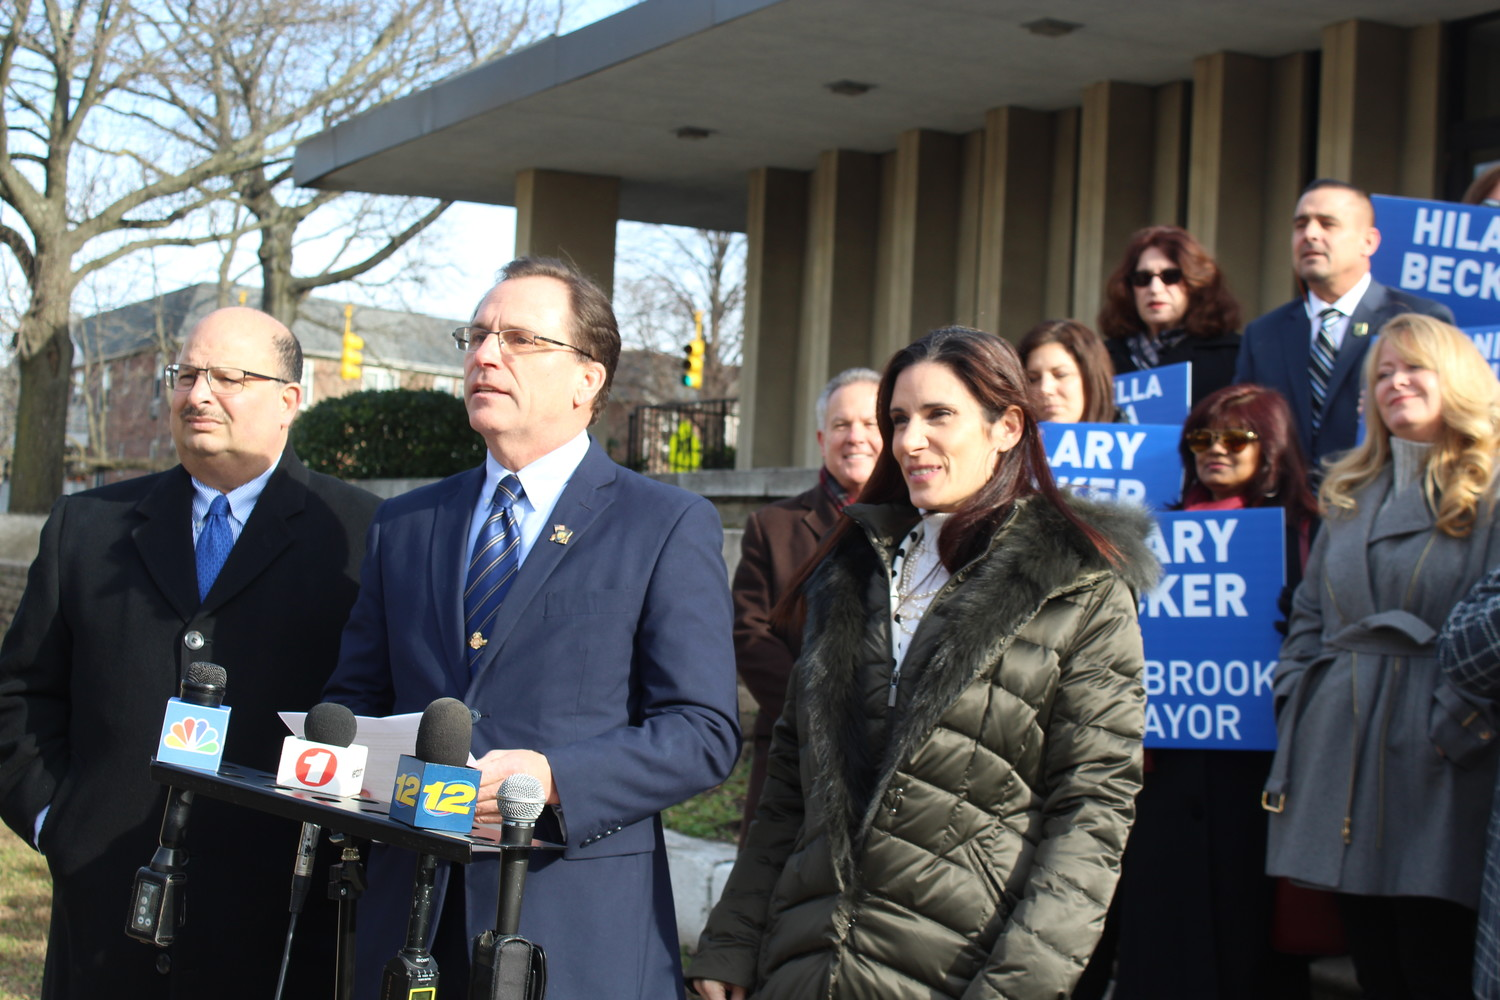 Lynbrook Deputy Mayor Hilary Becker, center, announced his candidacy for mayor at a news conference outside Village Hall on Jan. 2. He will challenge incumbent Alan Beach in the March 19 village election. Steve Ligouri, left, and Antoniella Tavella are running for trustee seats.